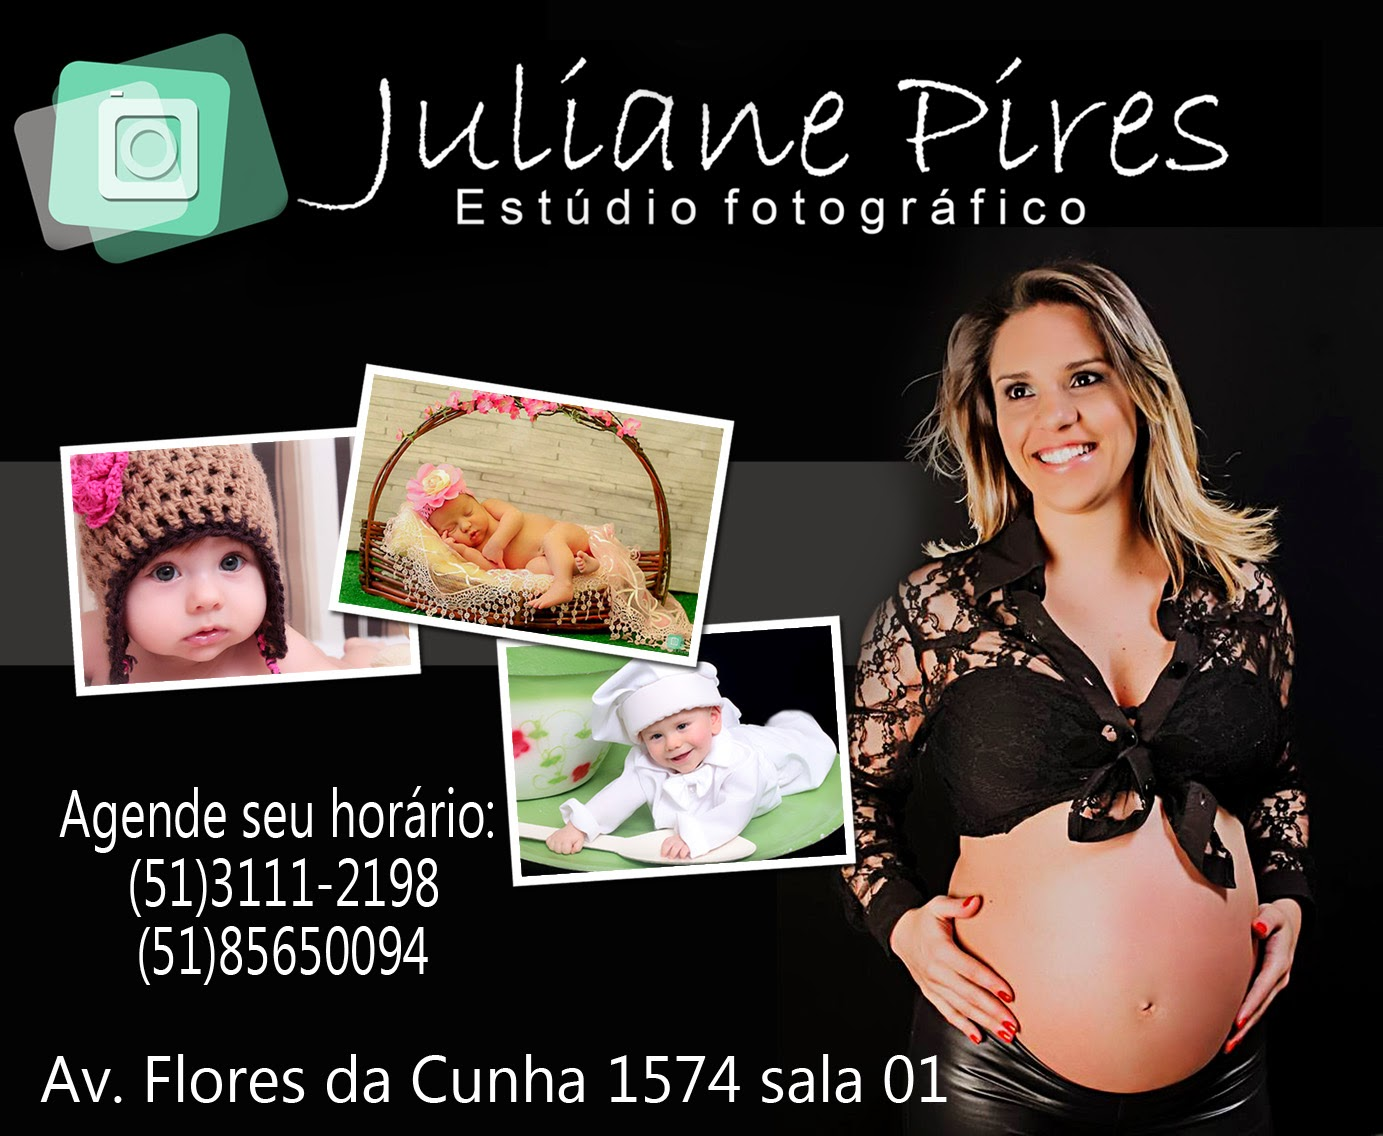 Estúdio Juliane Pires